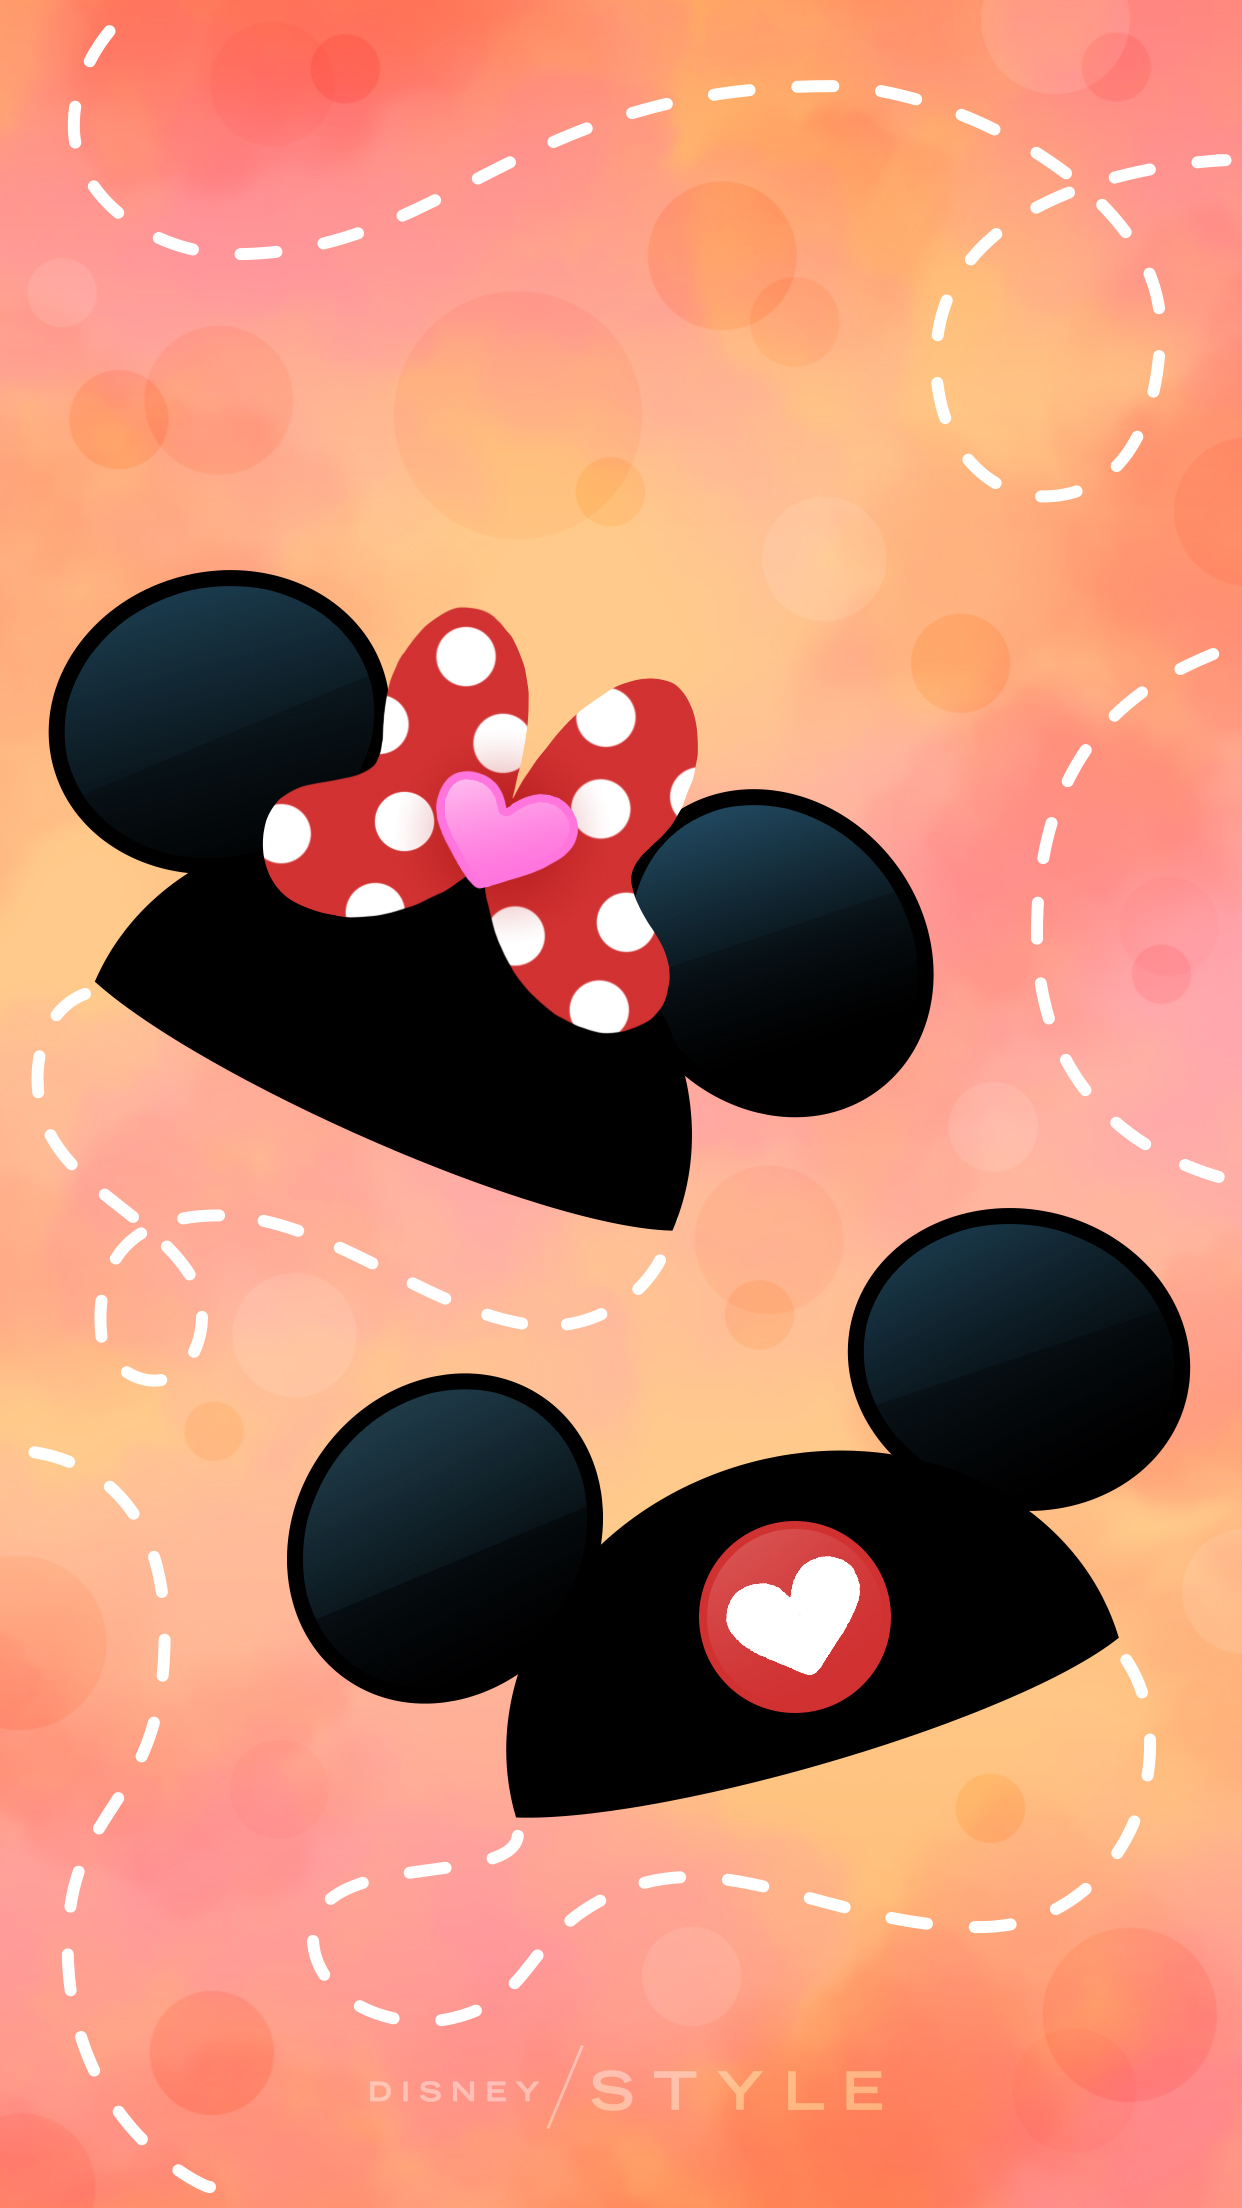 style_wallpaper_valentines_earhats_2